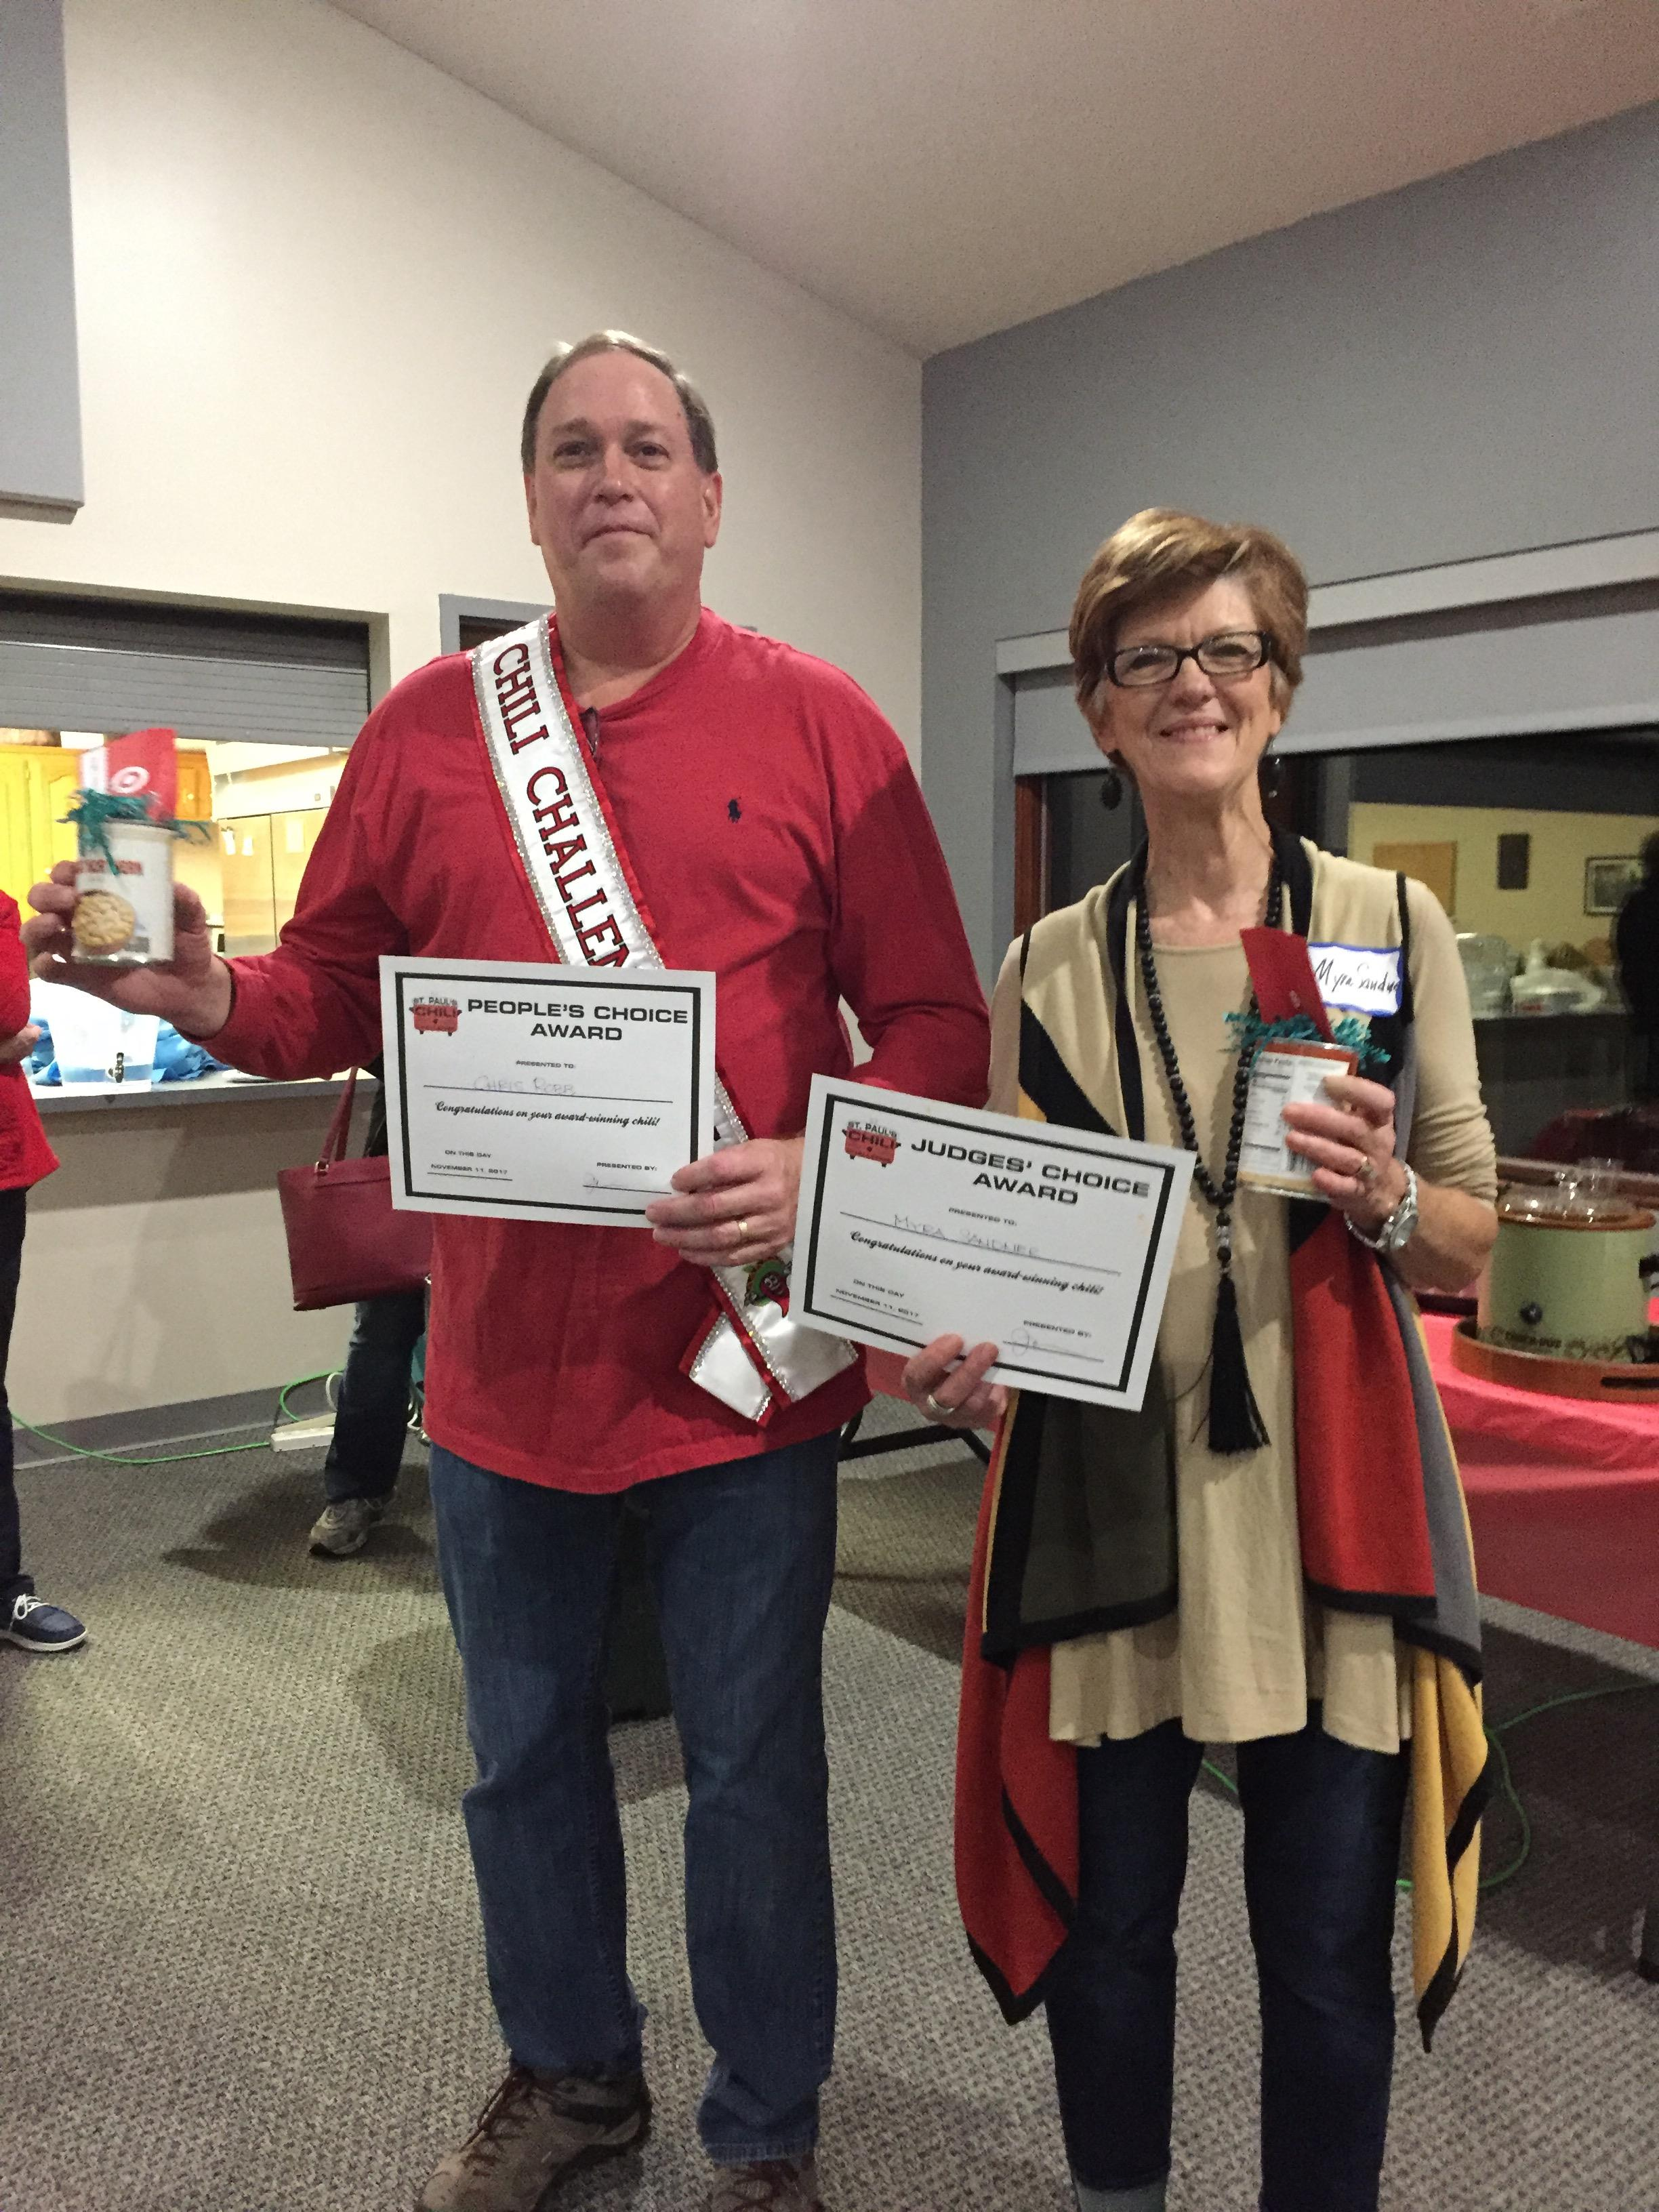 Chris Robb: Winner of a Judge's Favorite award AND People's Choice award. Myra Sandner: Winner of Judge's Favorite award.